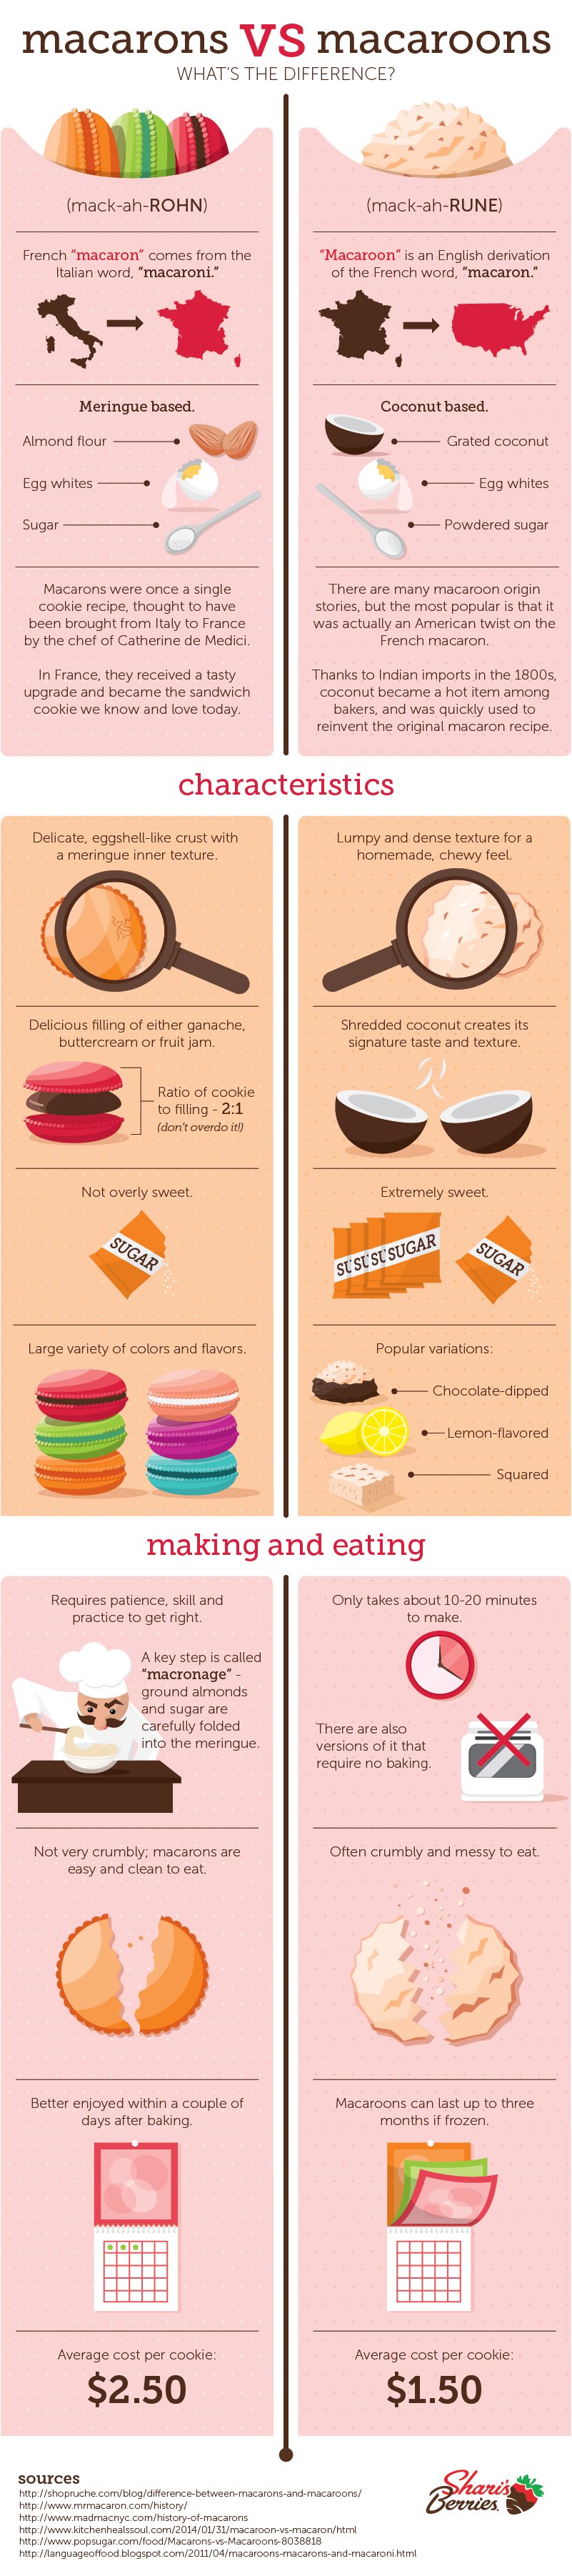 Macarons vs. Macaroons: What's the Difference?